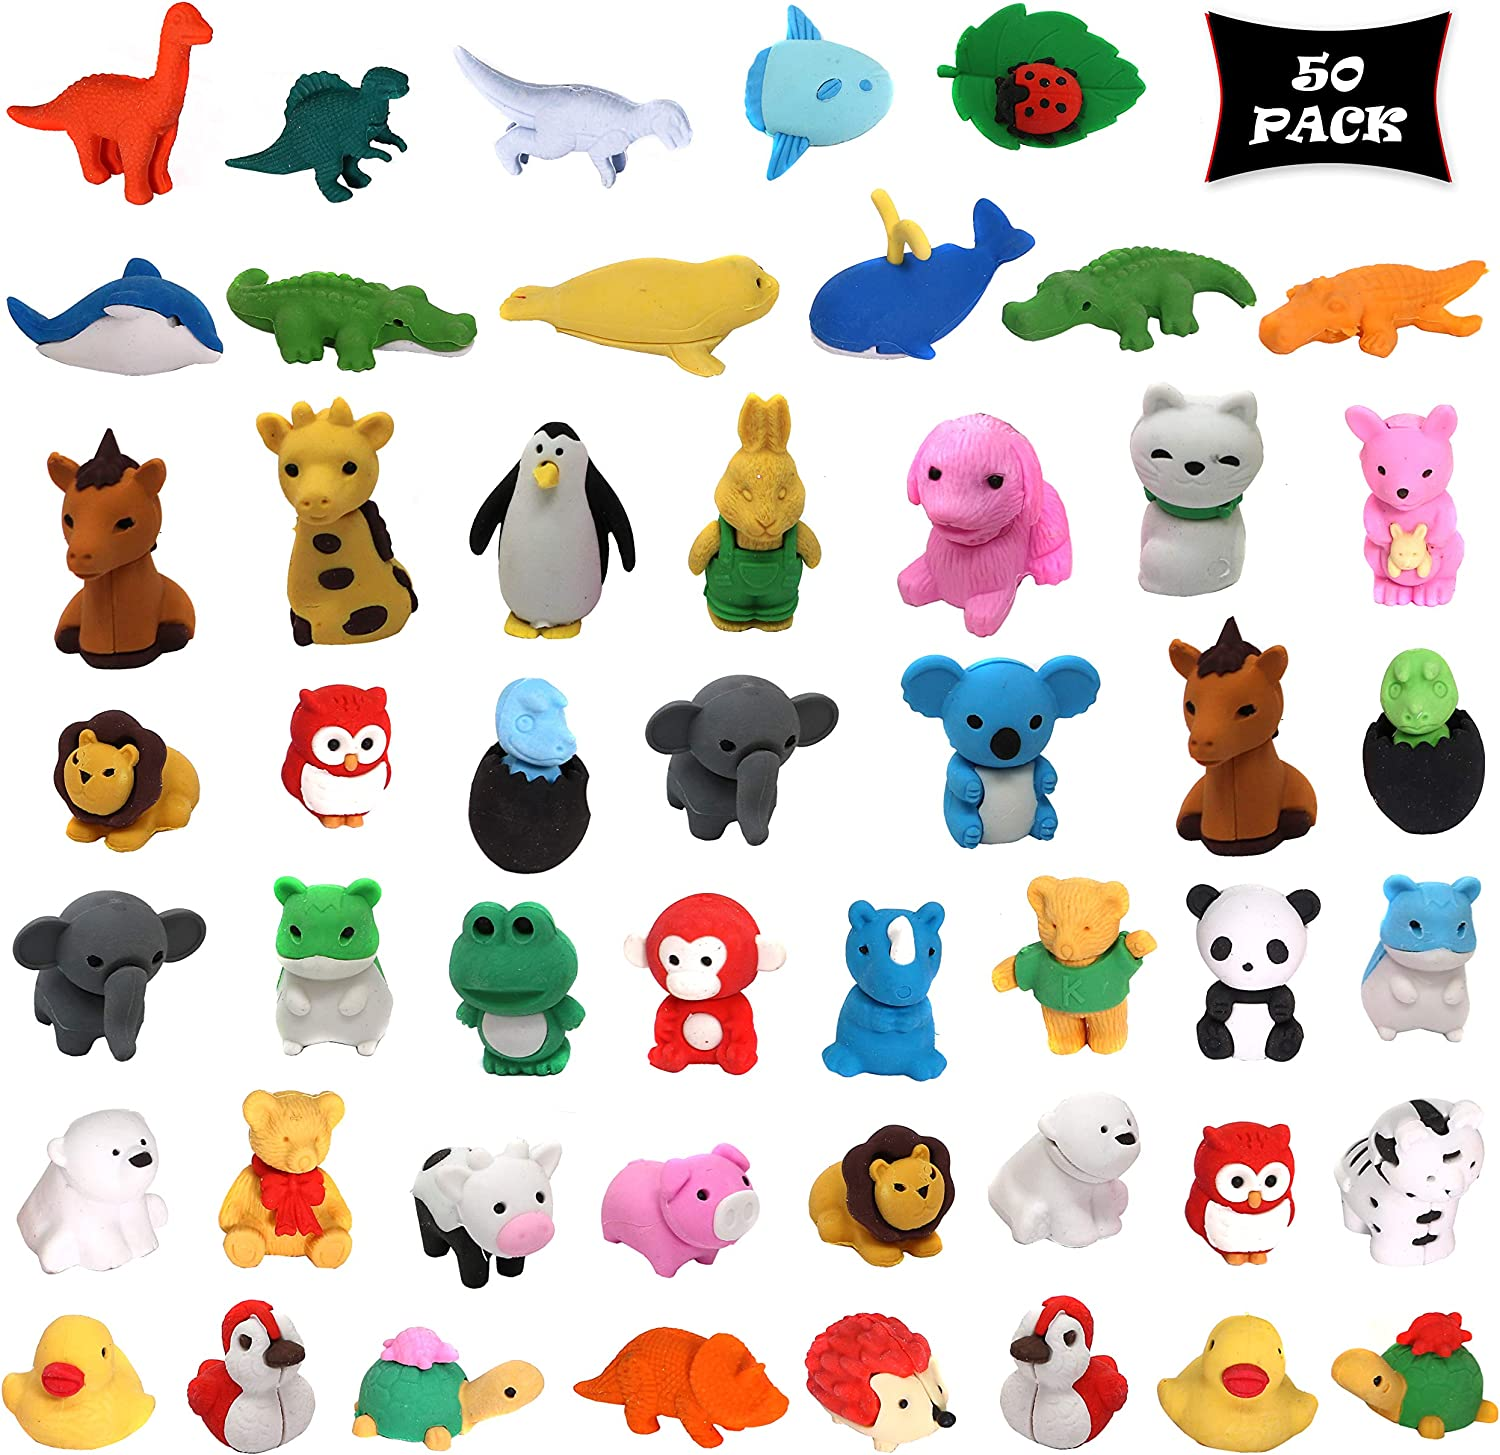 smart novelty animal erasers for kids party favors classroom rewards and prizes animal puzzle eraser assortment bulk pack of 50 erasers